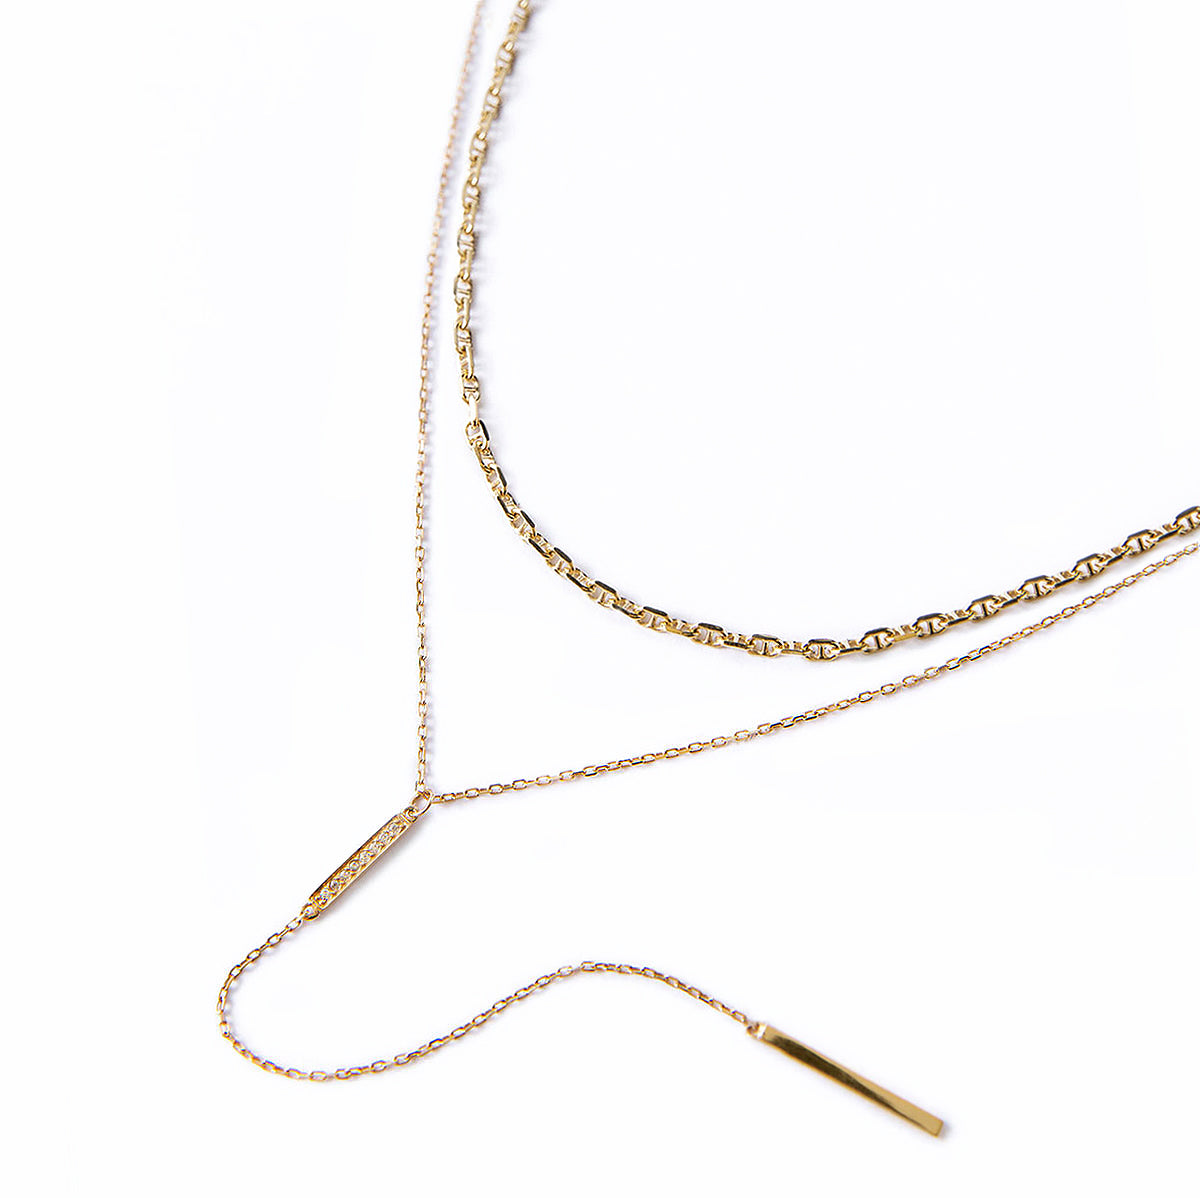 Gold Marina Chain and Bar Lariat Layered Necklace